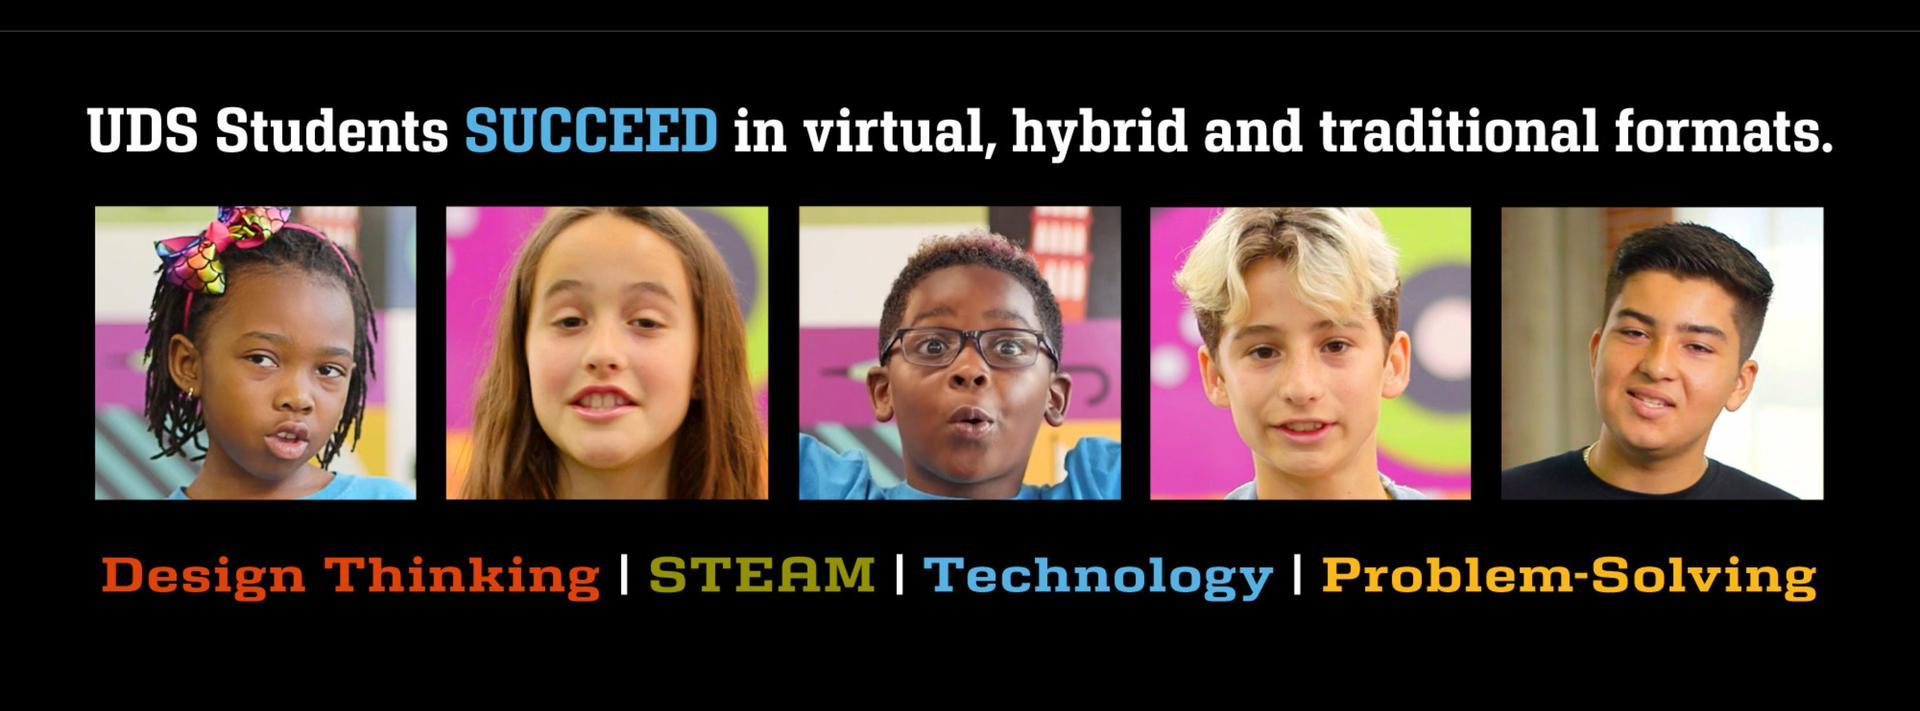 Urban Discovery Students SUCCEED in Virtual, Hybrid and Traditional Formats.